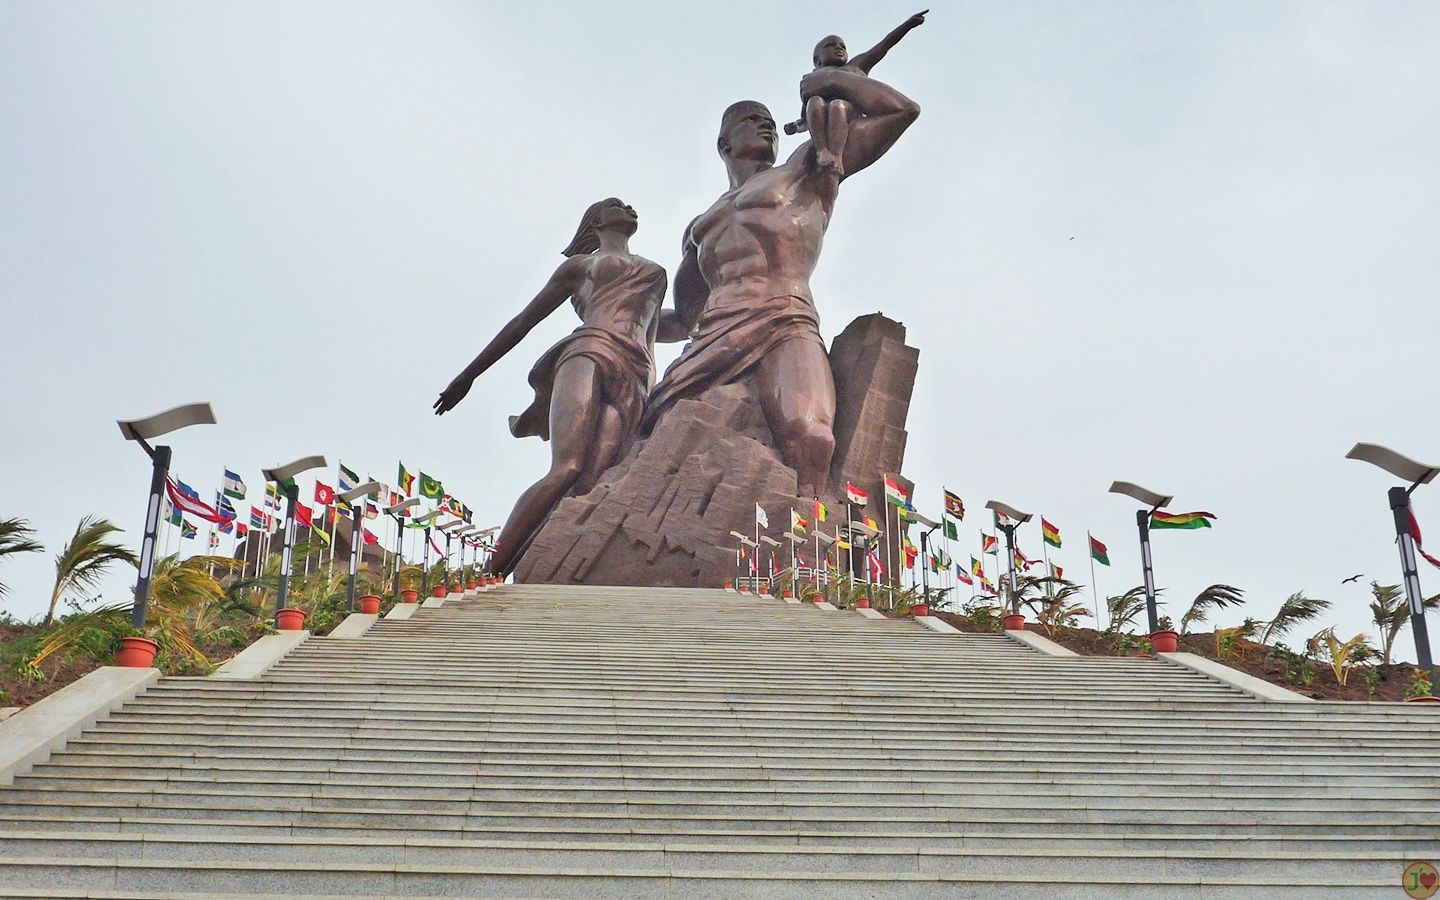 The Monument of the African Renaissance overlooking the beautiful coast of Dakar!